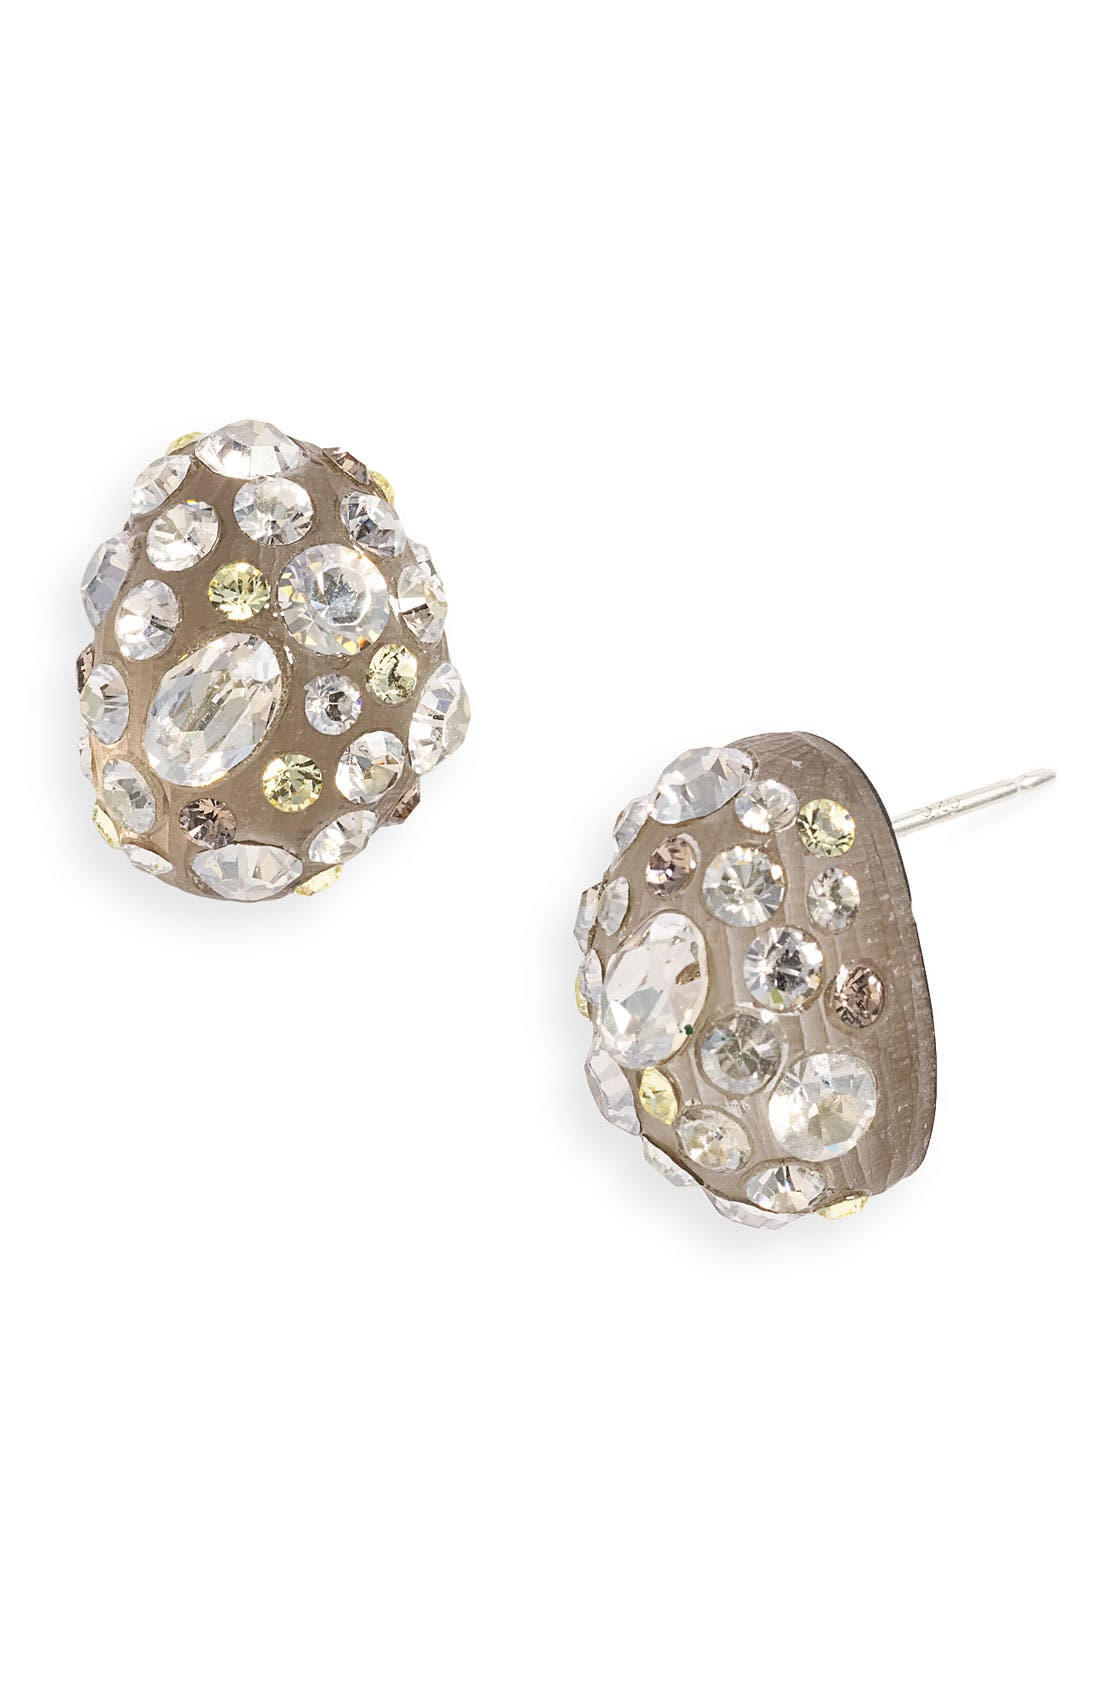 Alternate Image 1 Selected - Alexis Bittar 'Satin Dust' Pavé Bean Earrings (Nordstrom Exclusive)